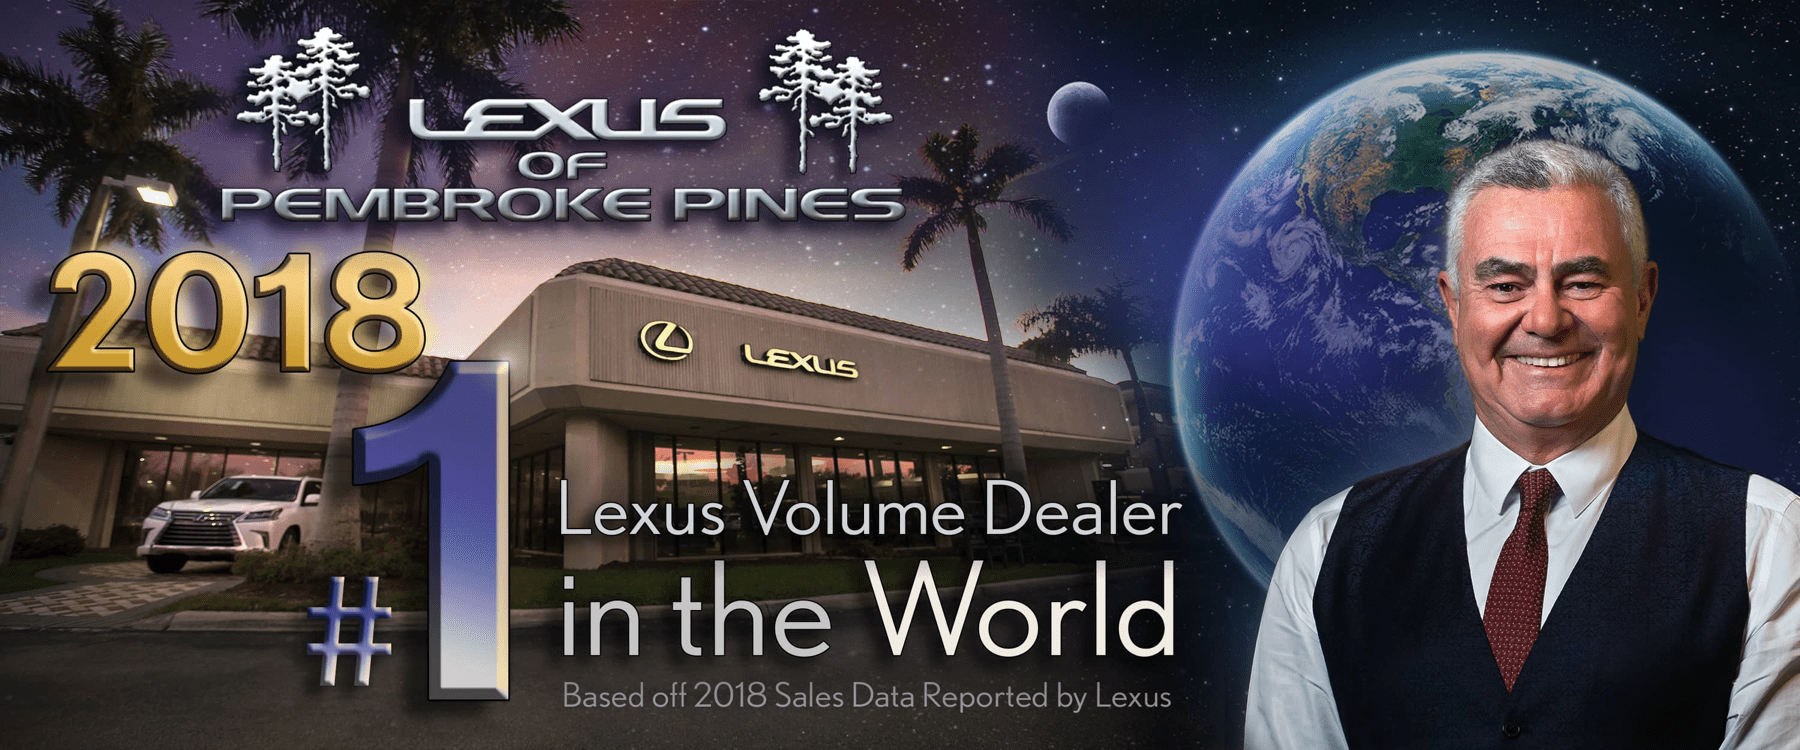 #1 Lexus Dealer in the World